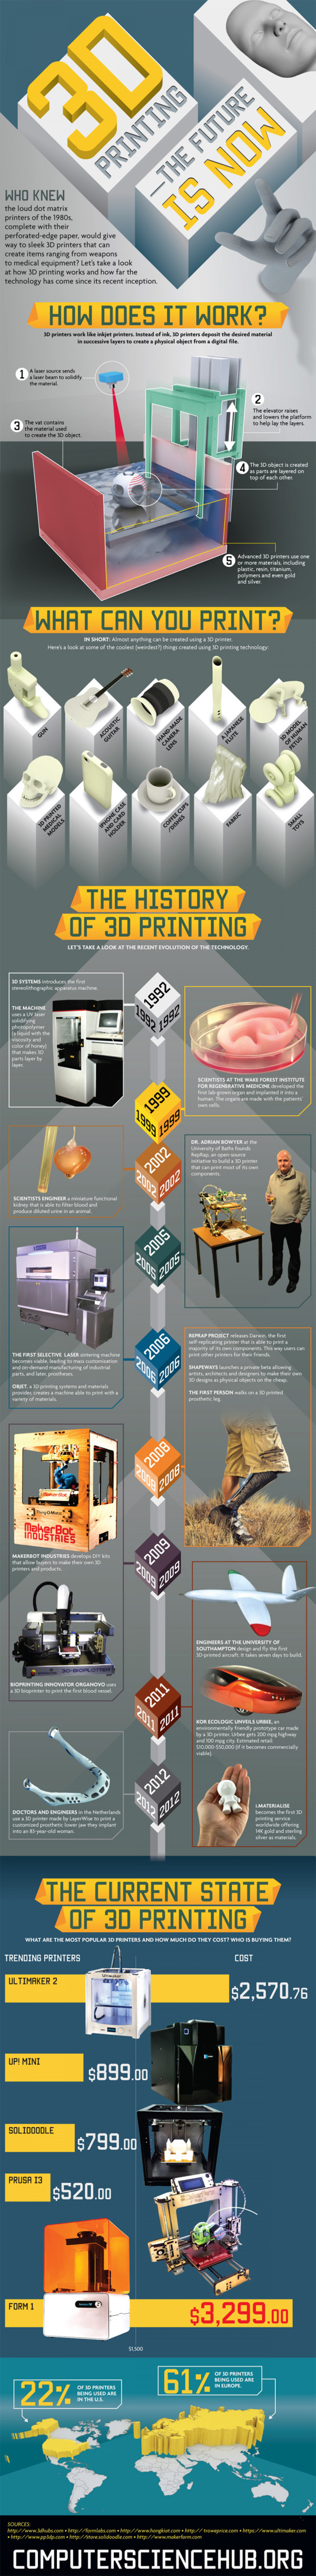 3D Printing: The Future is Now Infographic